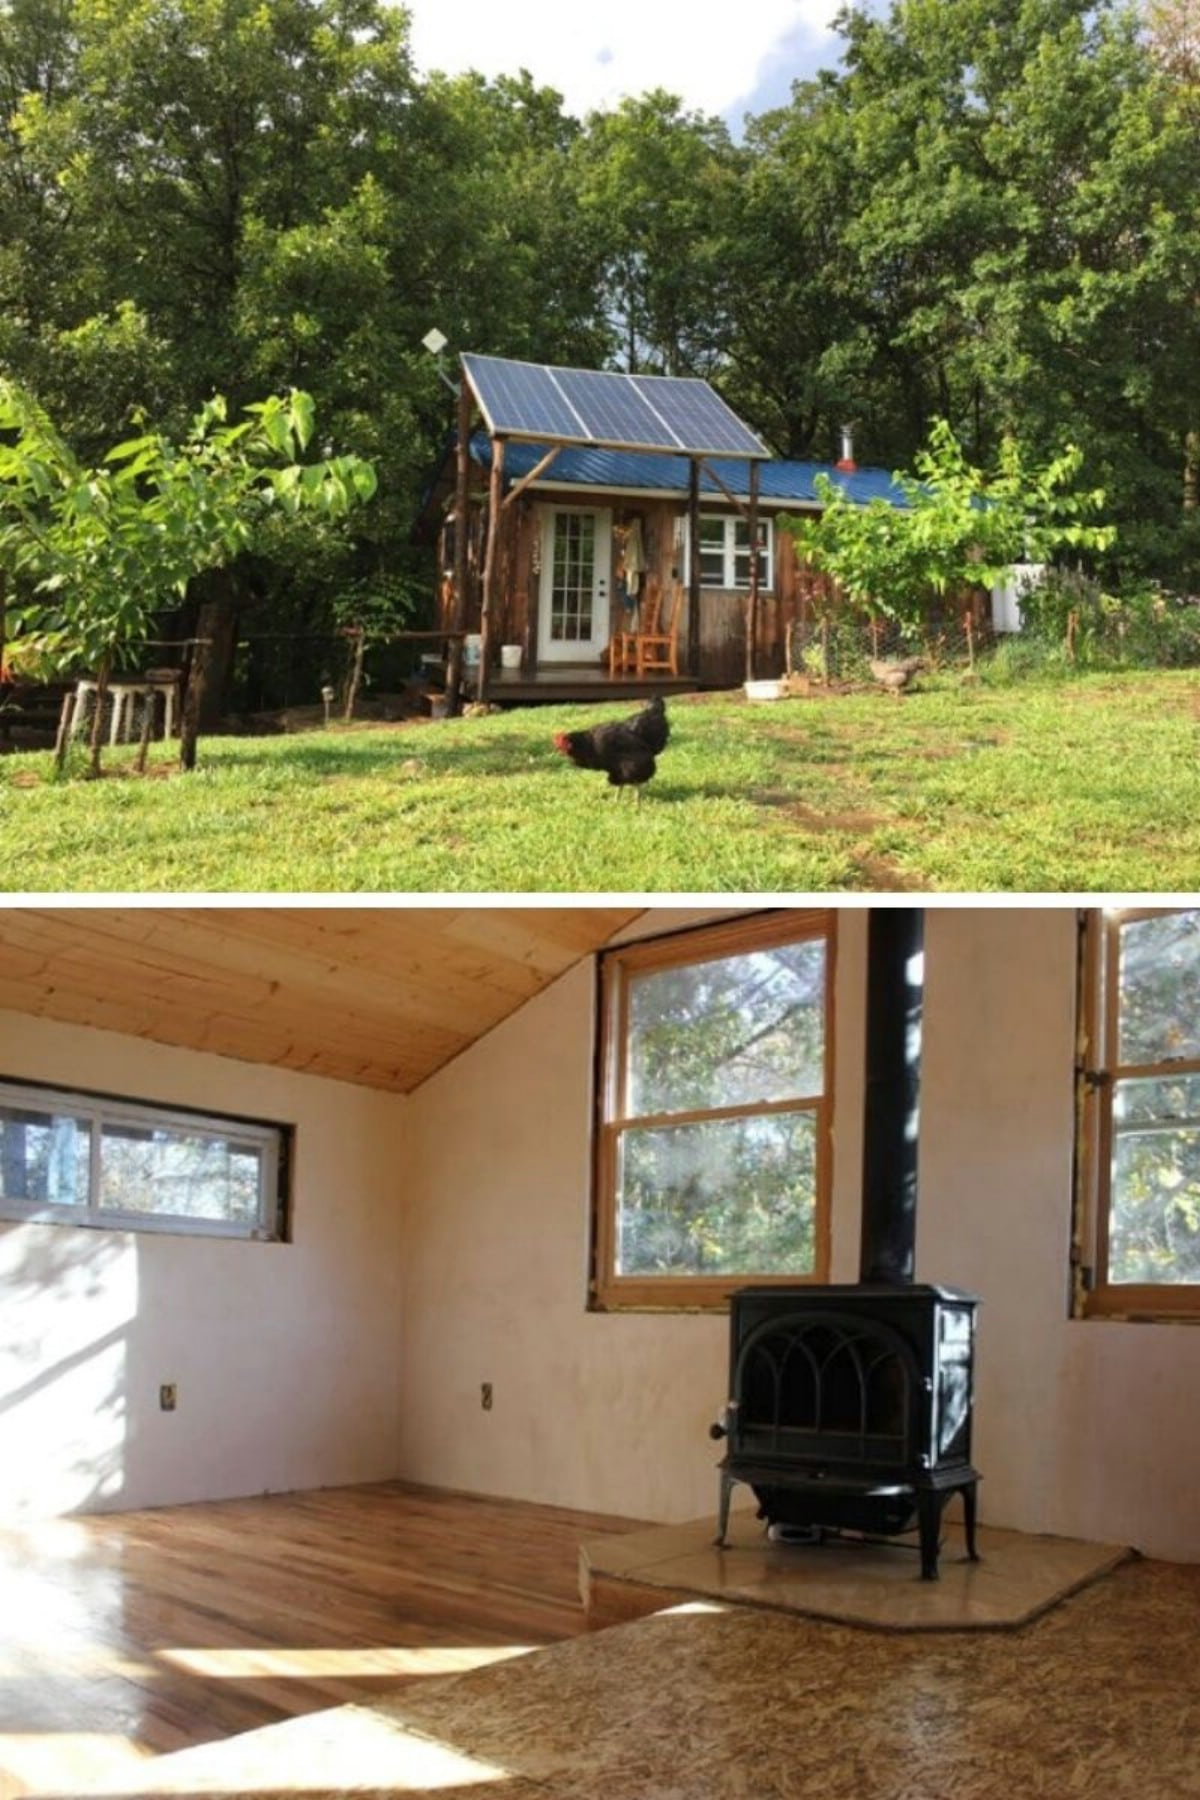 Brian And Teri's Off-The-Grid Tiny House